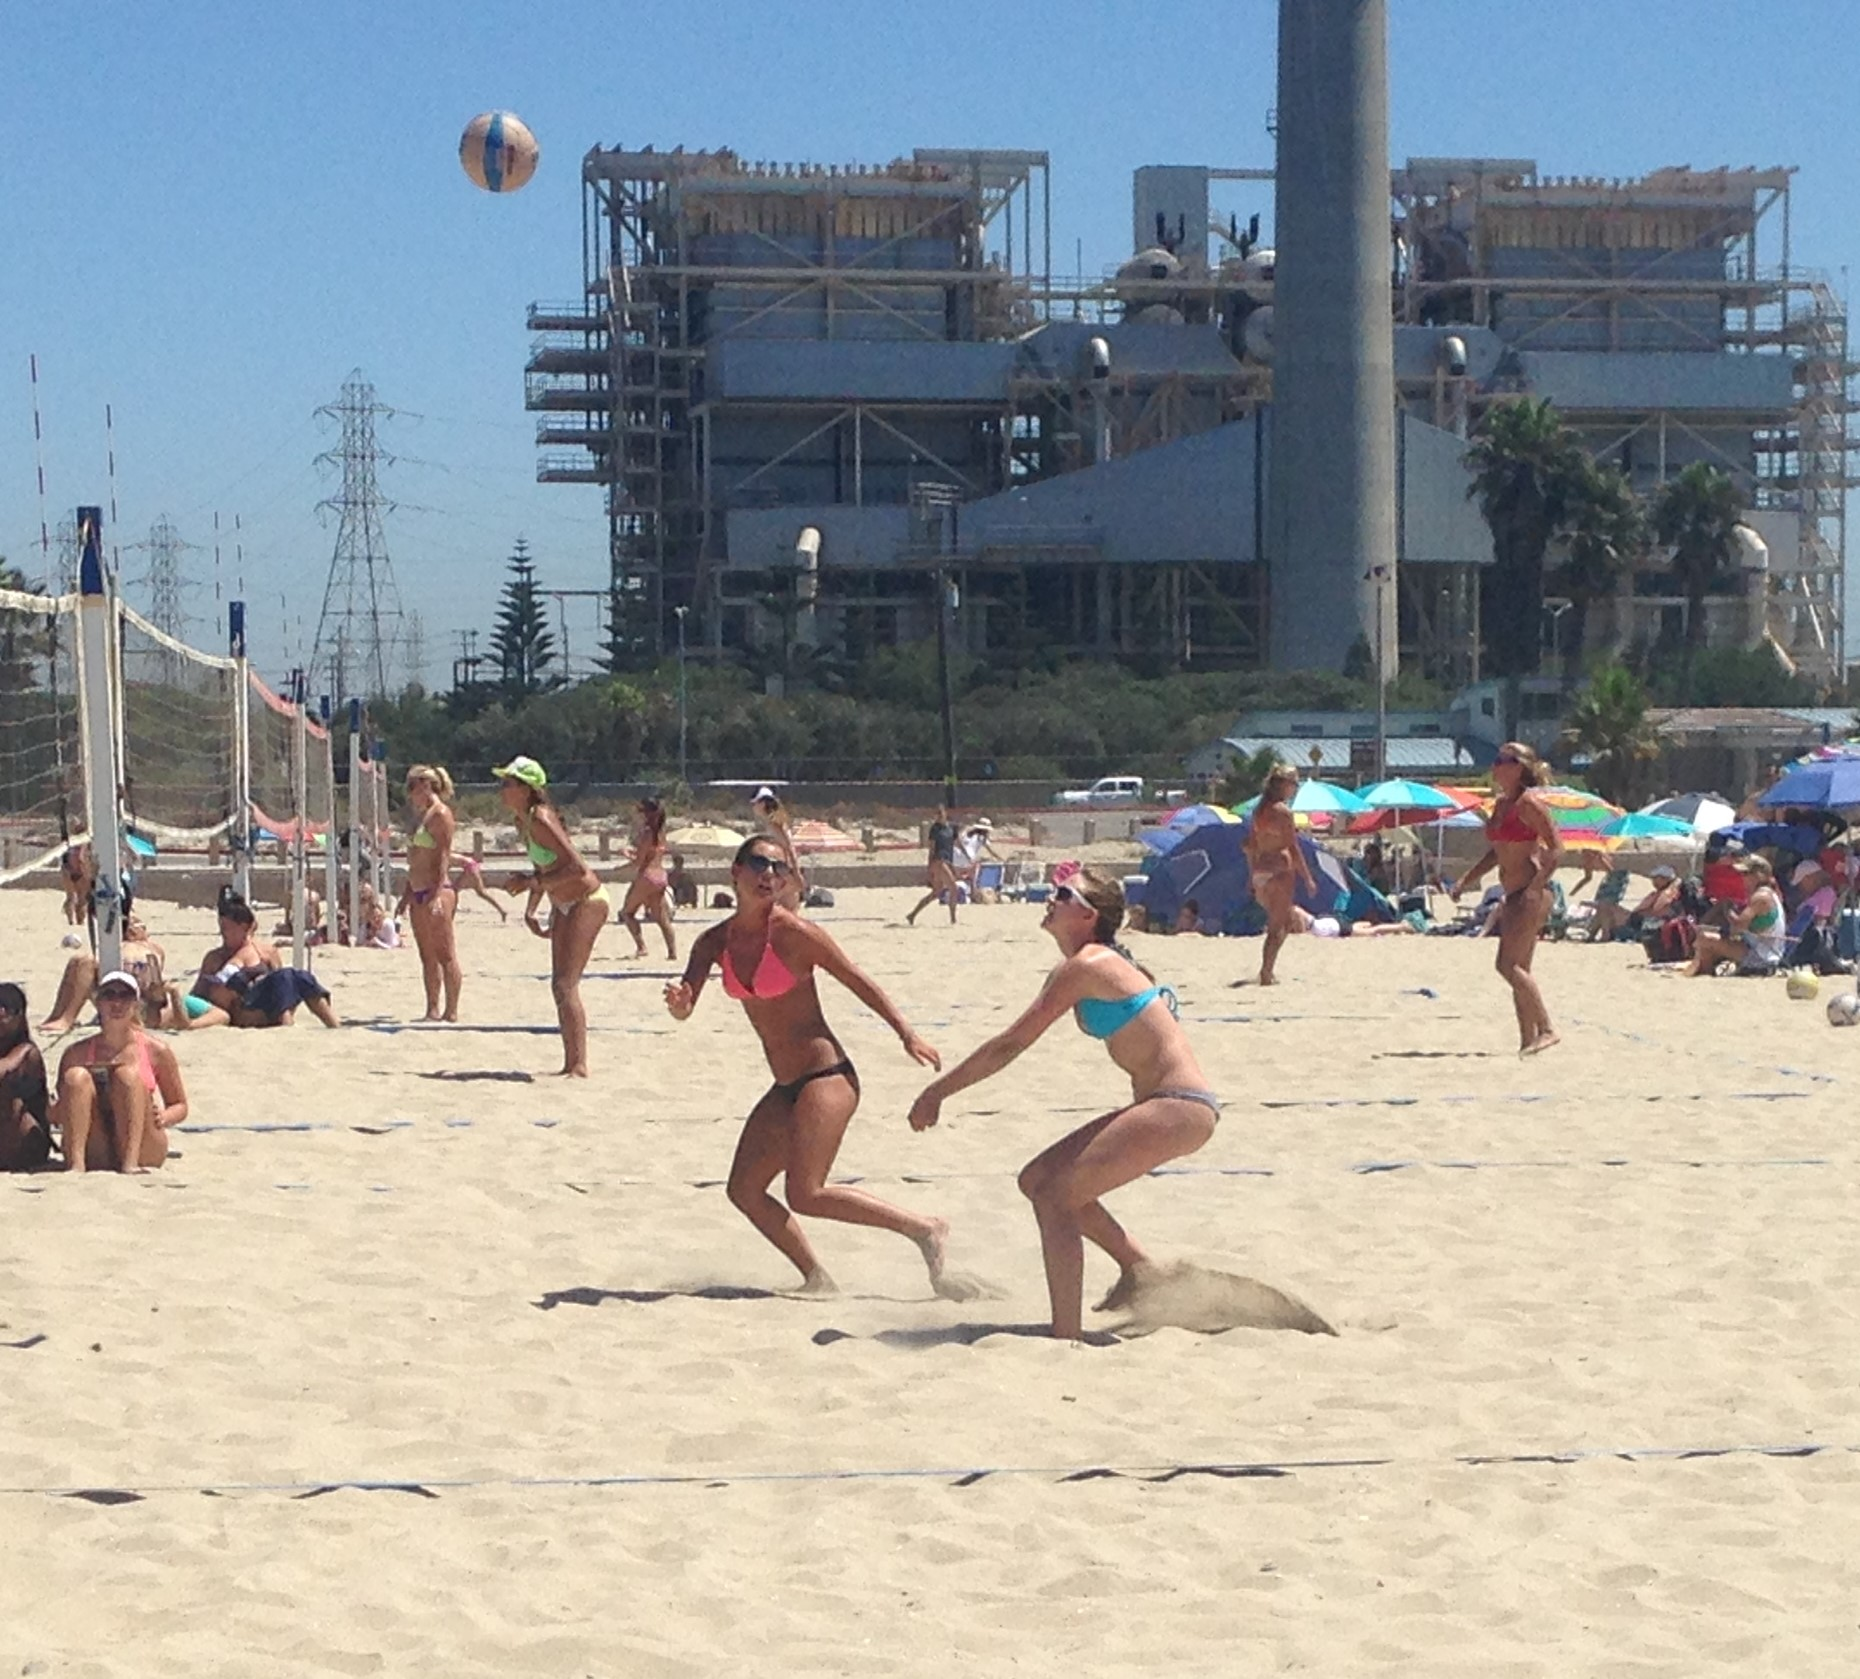 Bailey Barton and Tressa Buckland came out from Utah to try their hands at California beach volleyball